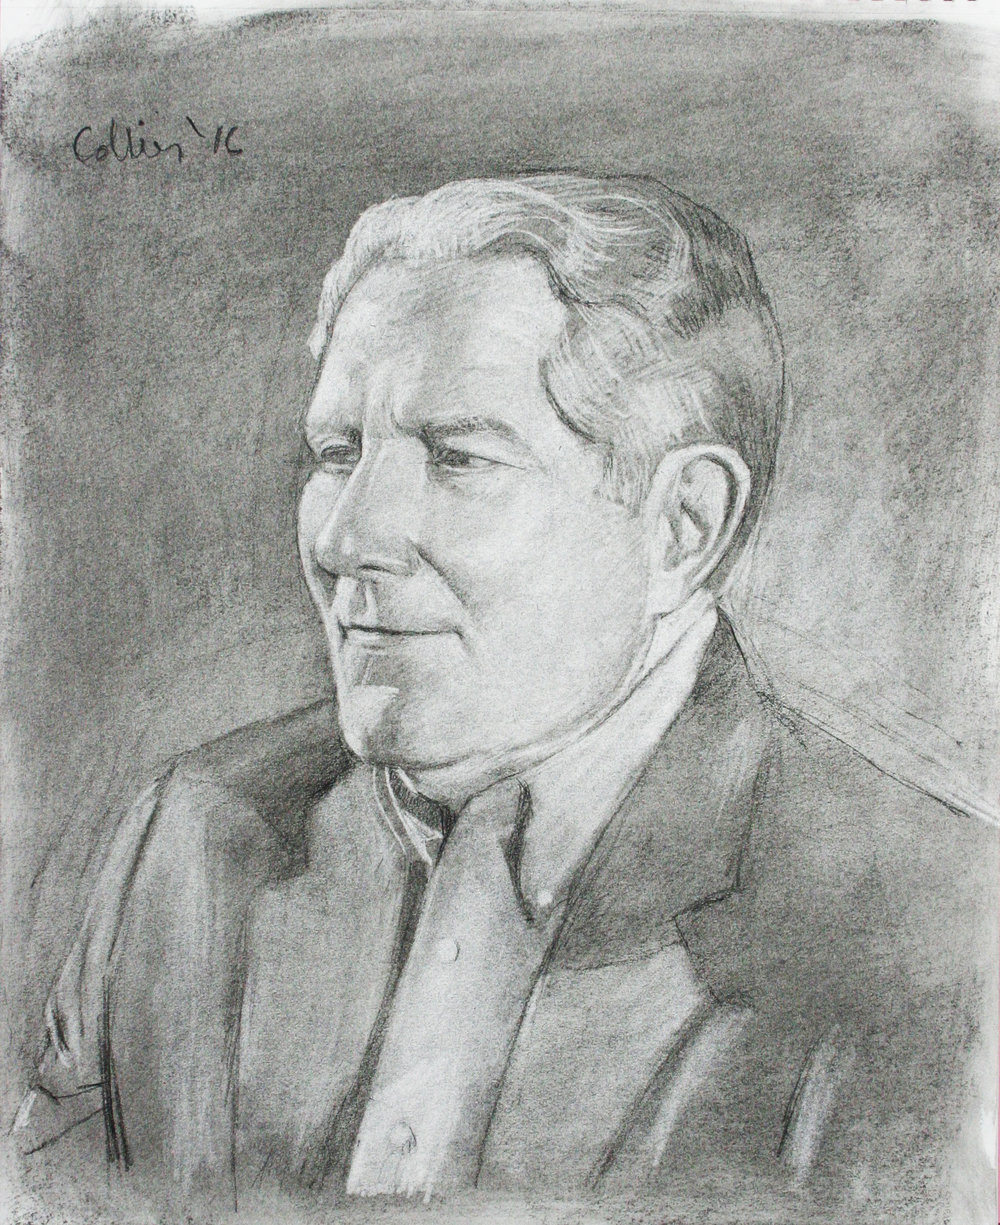 Howard Collier did this 3-hour graphite drawing.